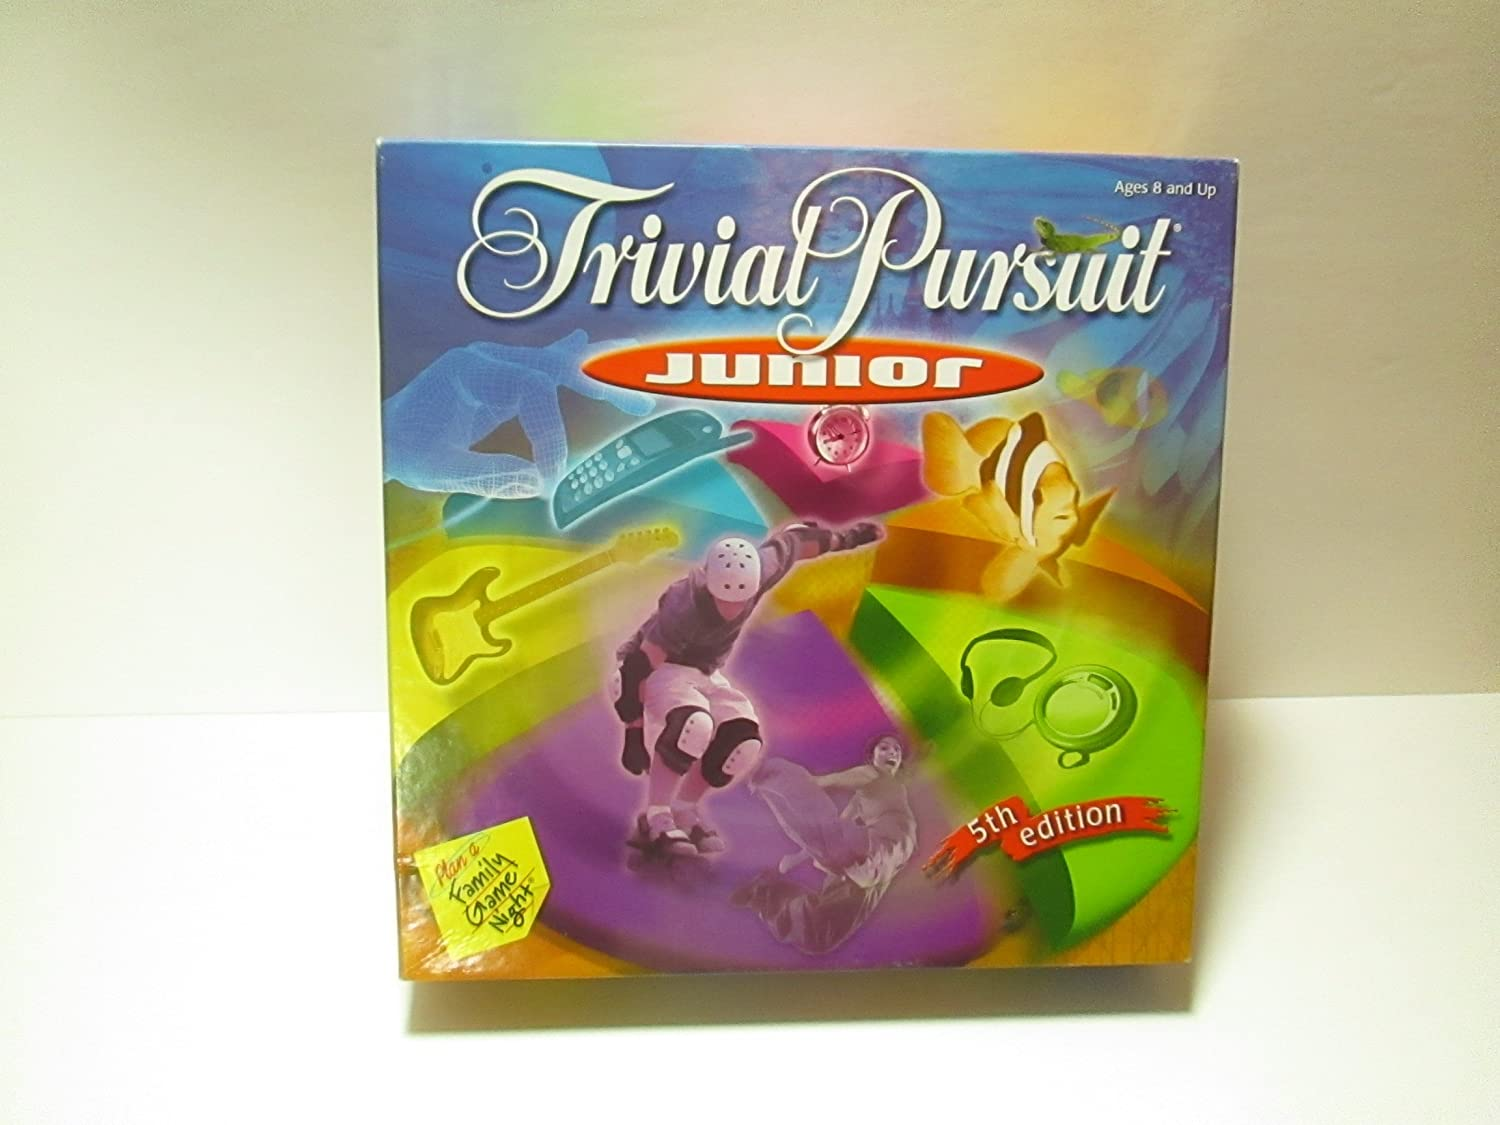 Trivial Trivial Trivial Pursuit Junior Game (5th Edition) by Hasbro fea6a9